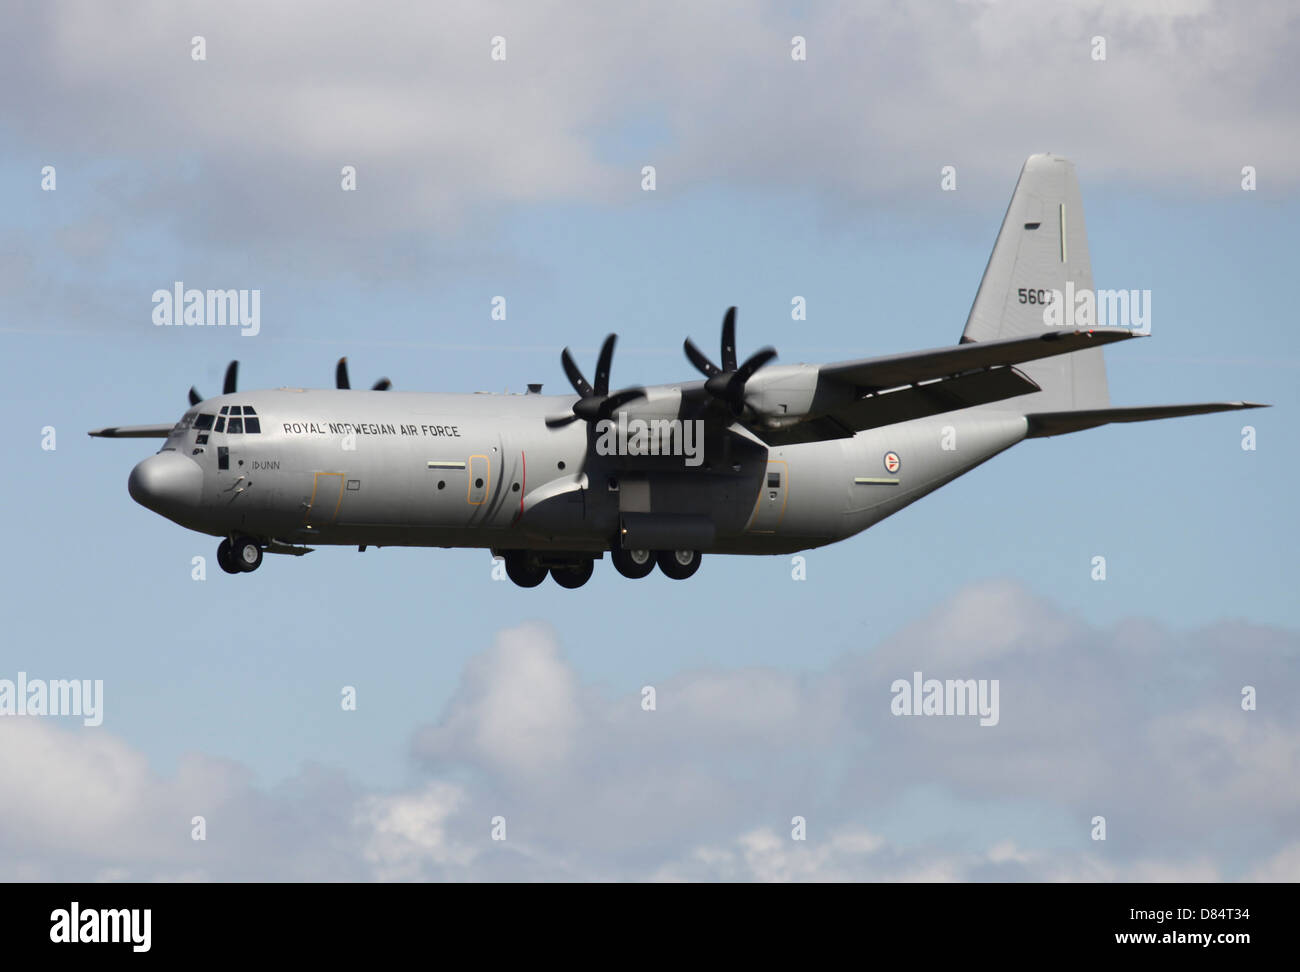 A Royal Norwegian Air Force C-130J Hercules landing at Ramstein Air Base, Germany, during the war in Lybia. - Stock Image